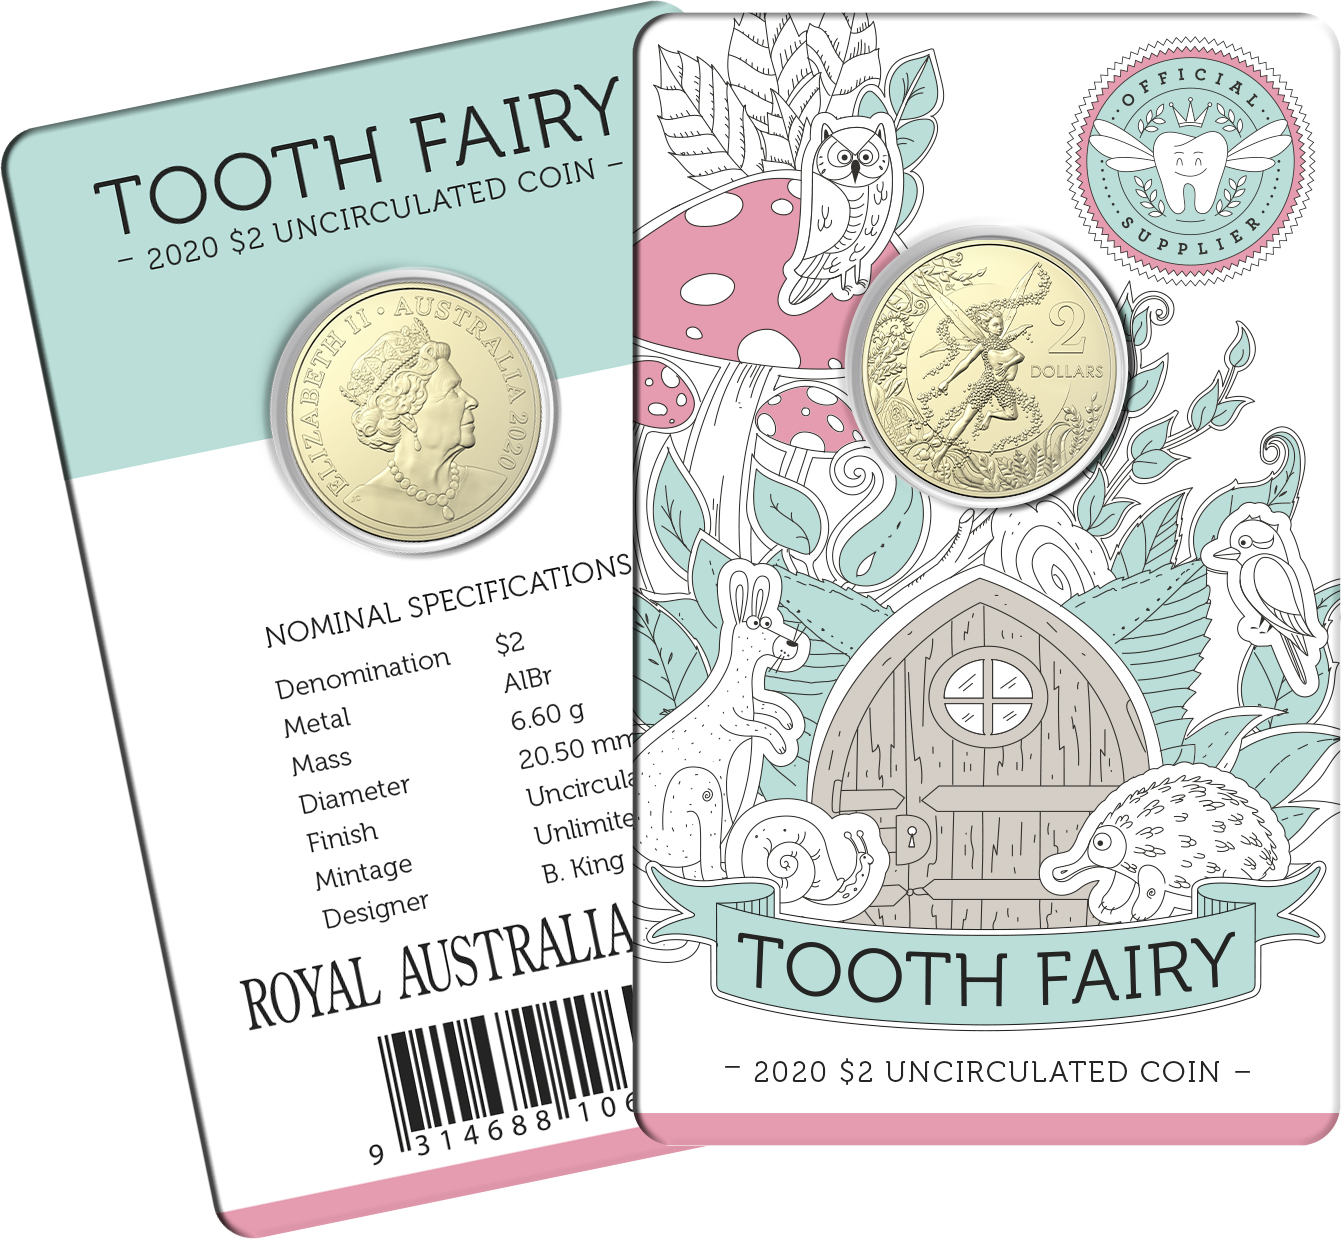 Thumbnail for 2020 $2.00 Tooth Fairy Coin Uncirculated